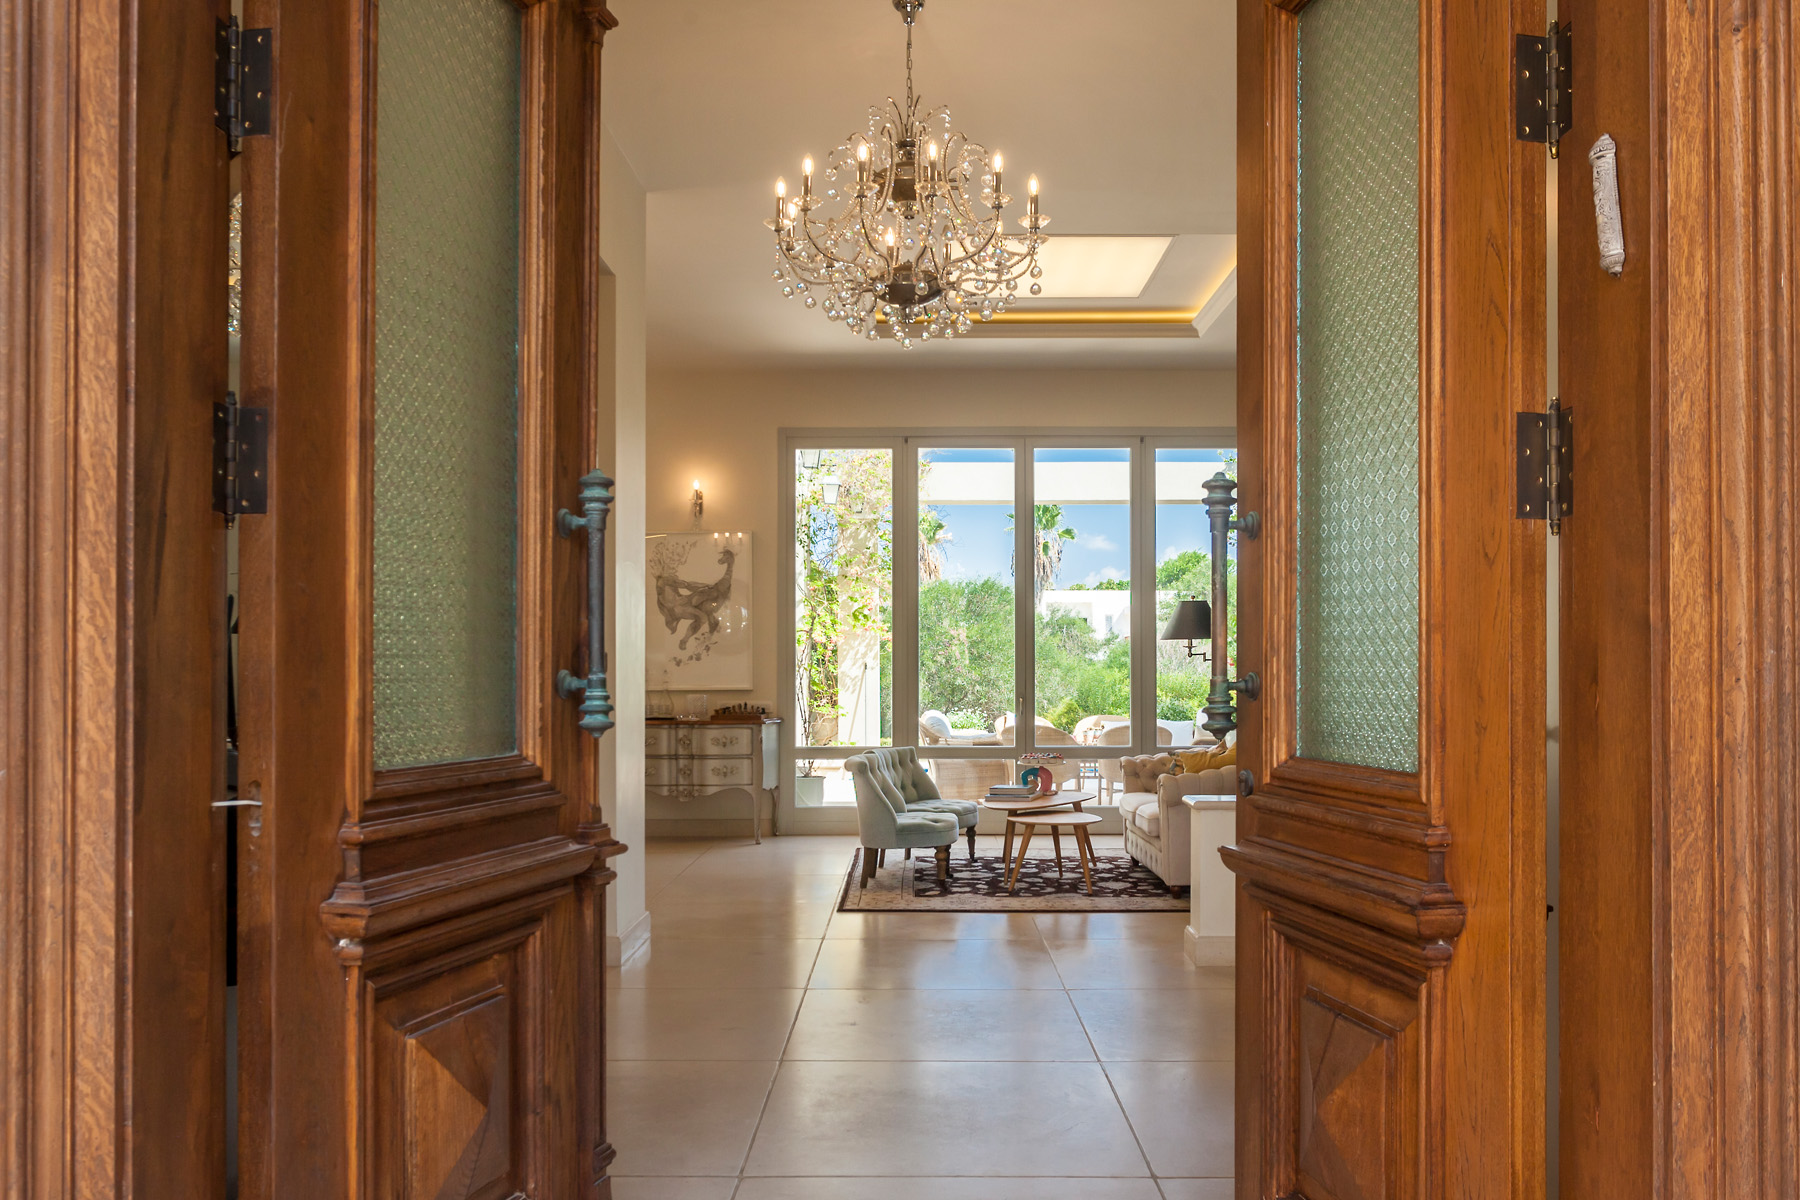 Additional photo for property listing at Majestic Classic Sea View Villa  Caesarea, Israel 3088900 Israel